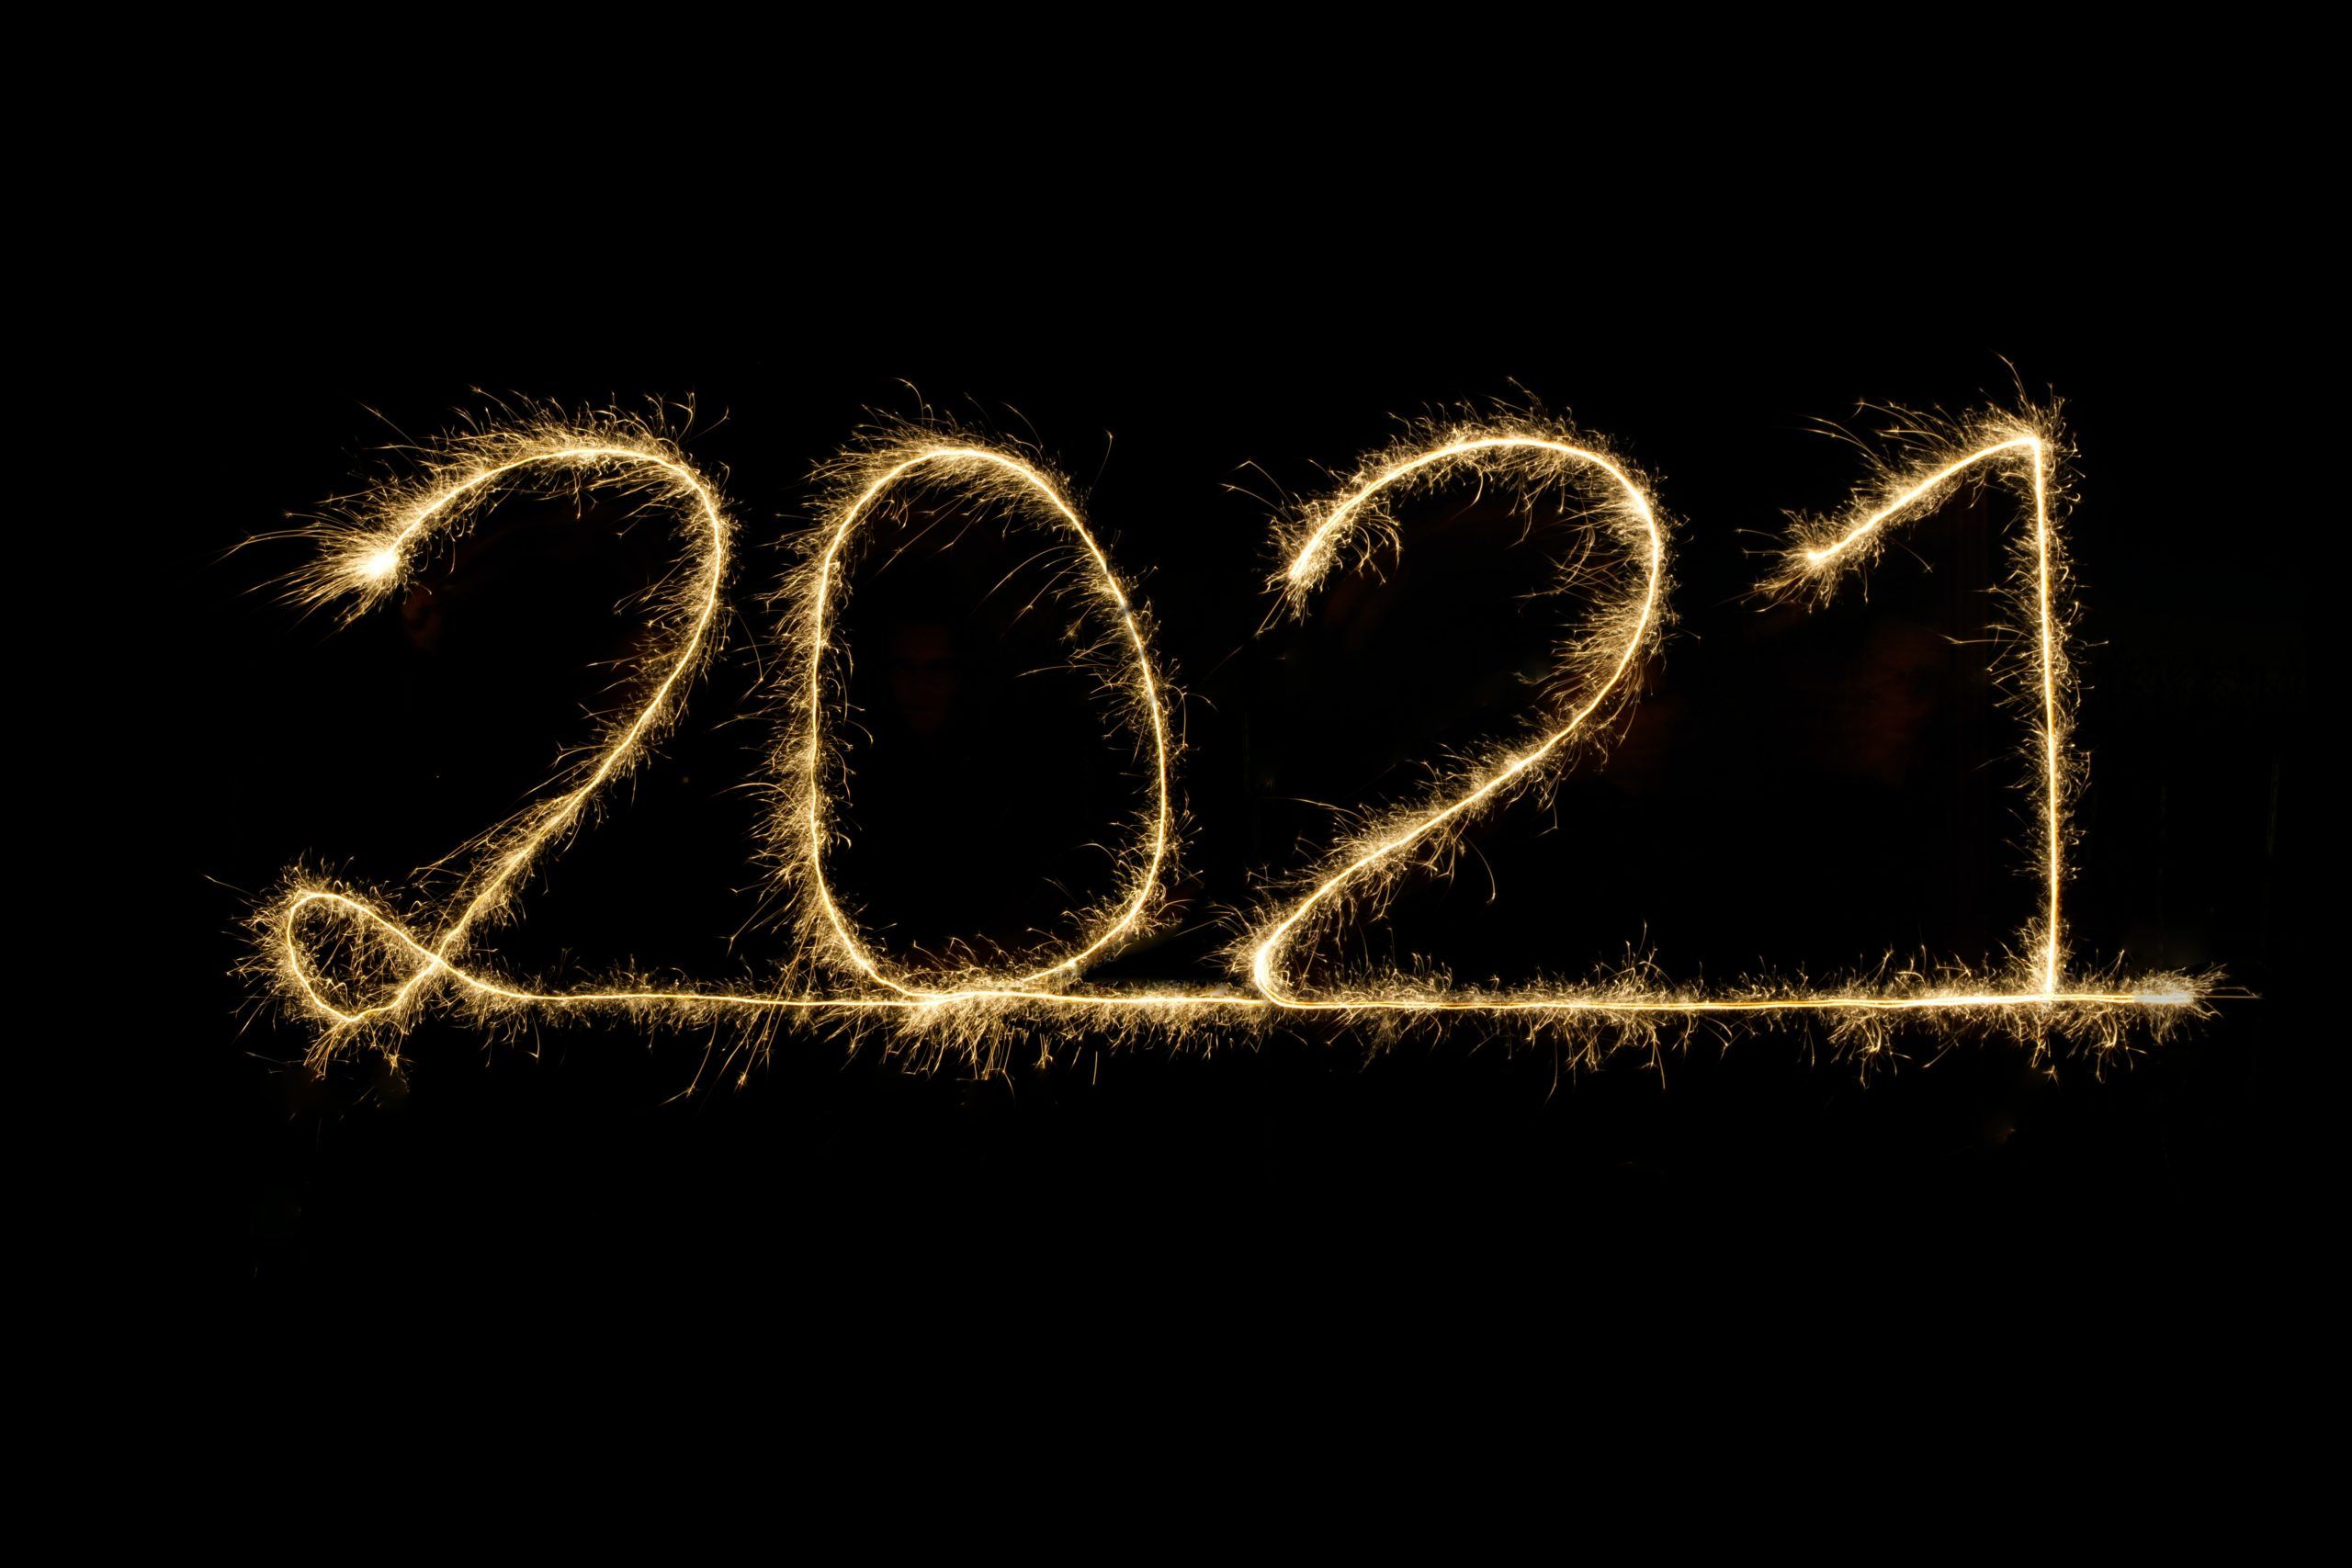 Trips to Take in 2021 Based on Your New Year's Resolution